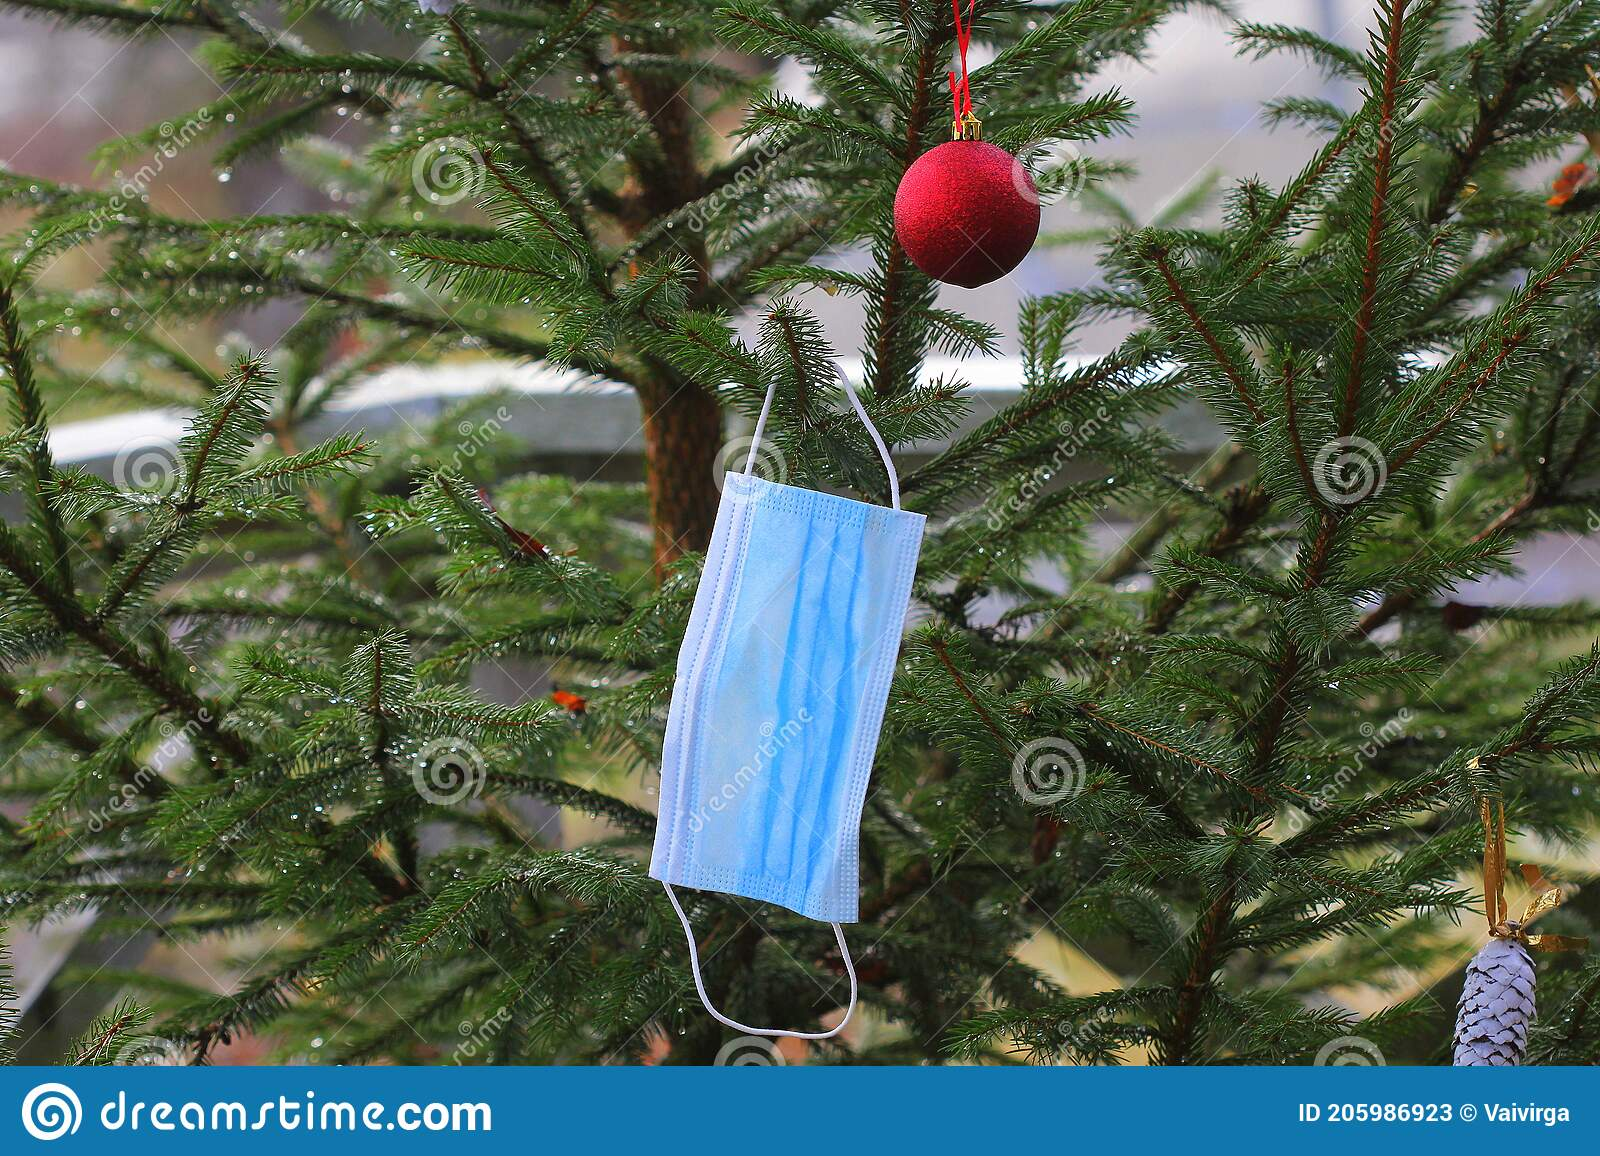 706 Christmas Classroom Decoration Photos Free Royalty Free Stock Photos From Dreamstime